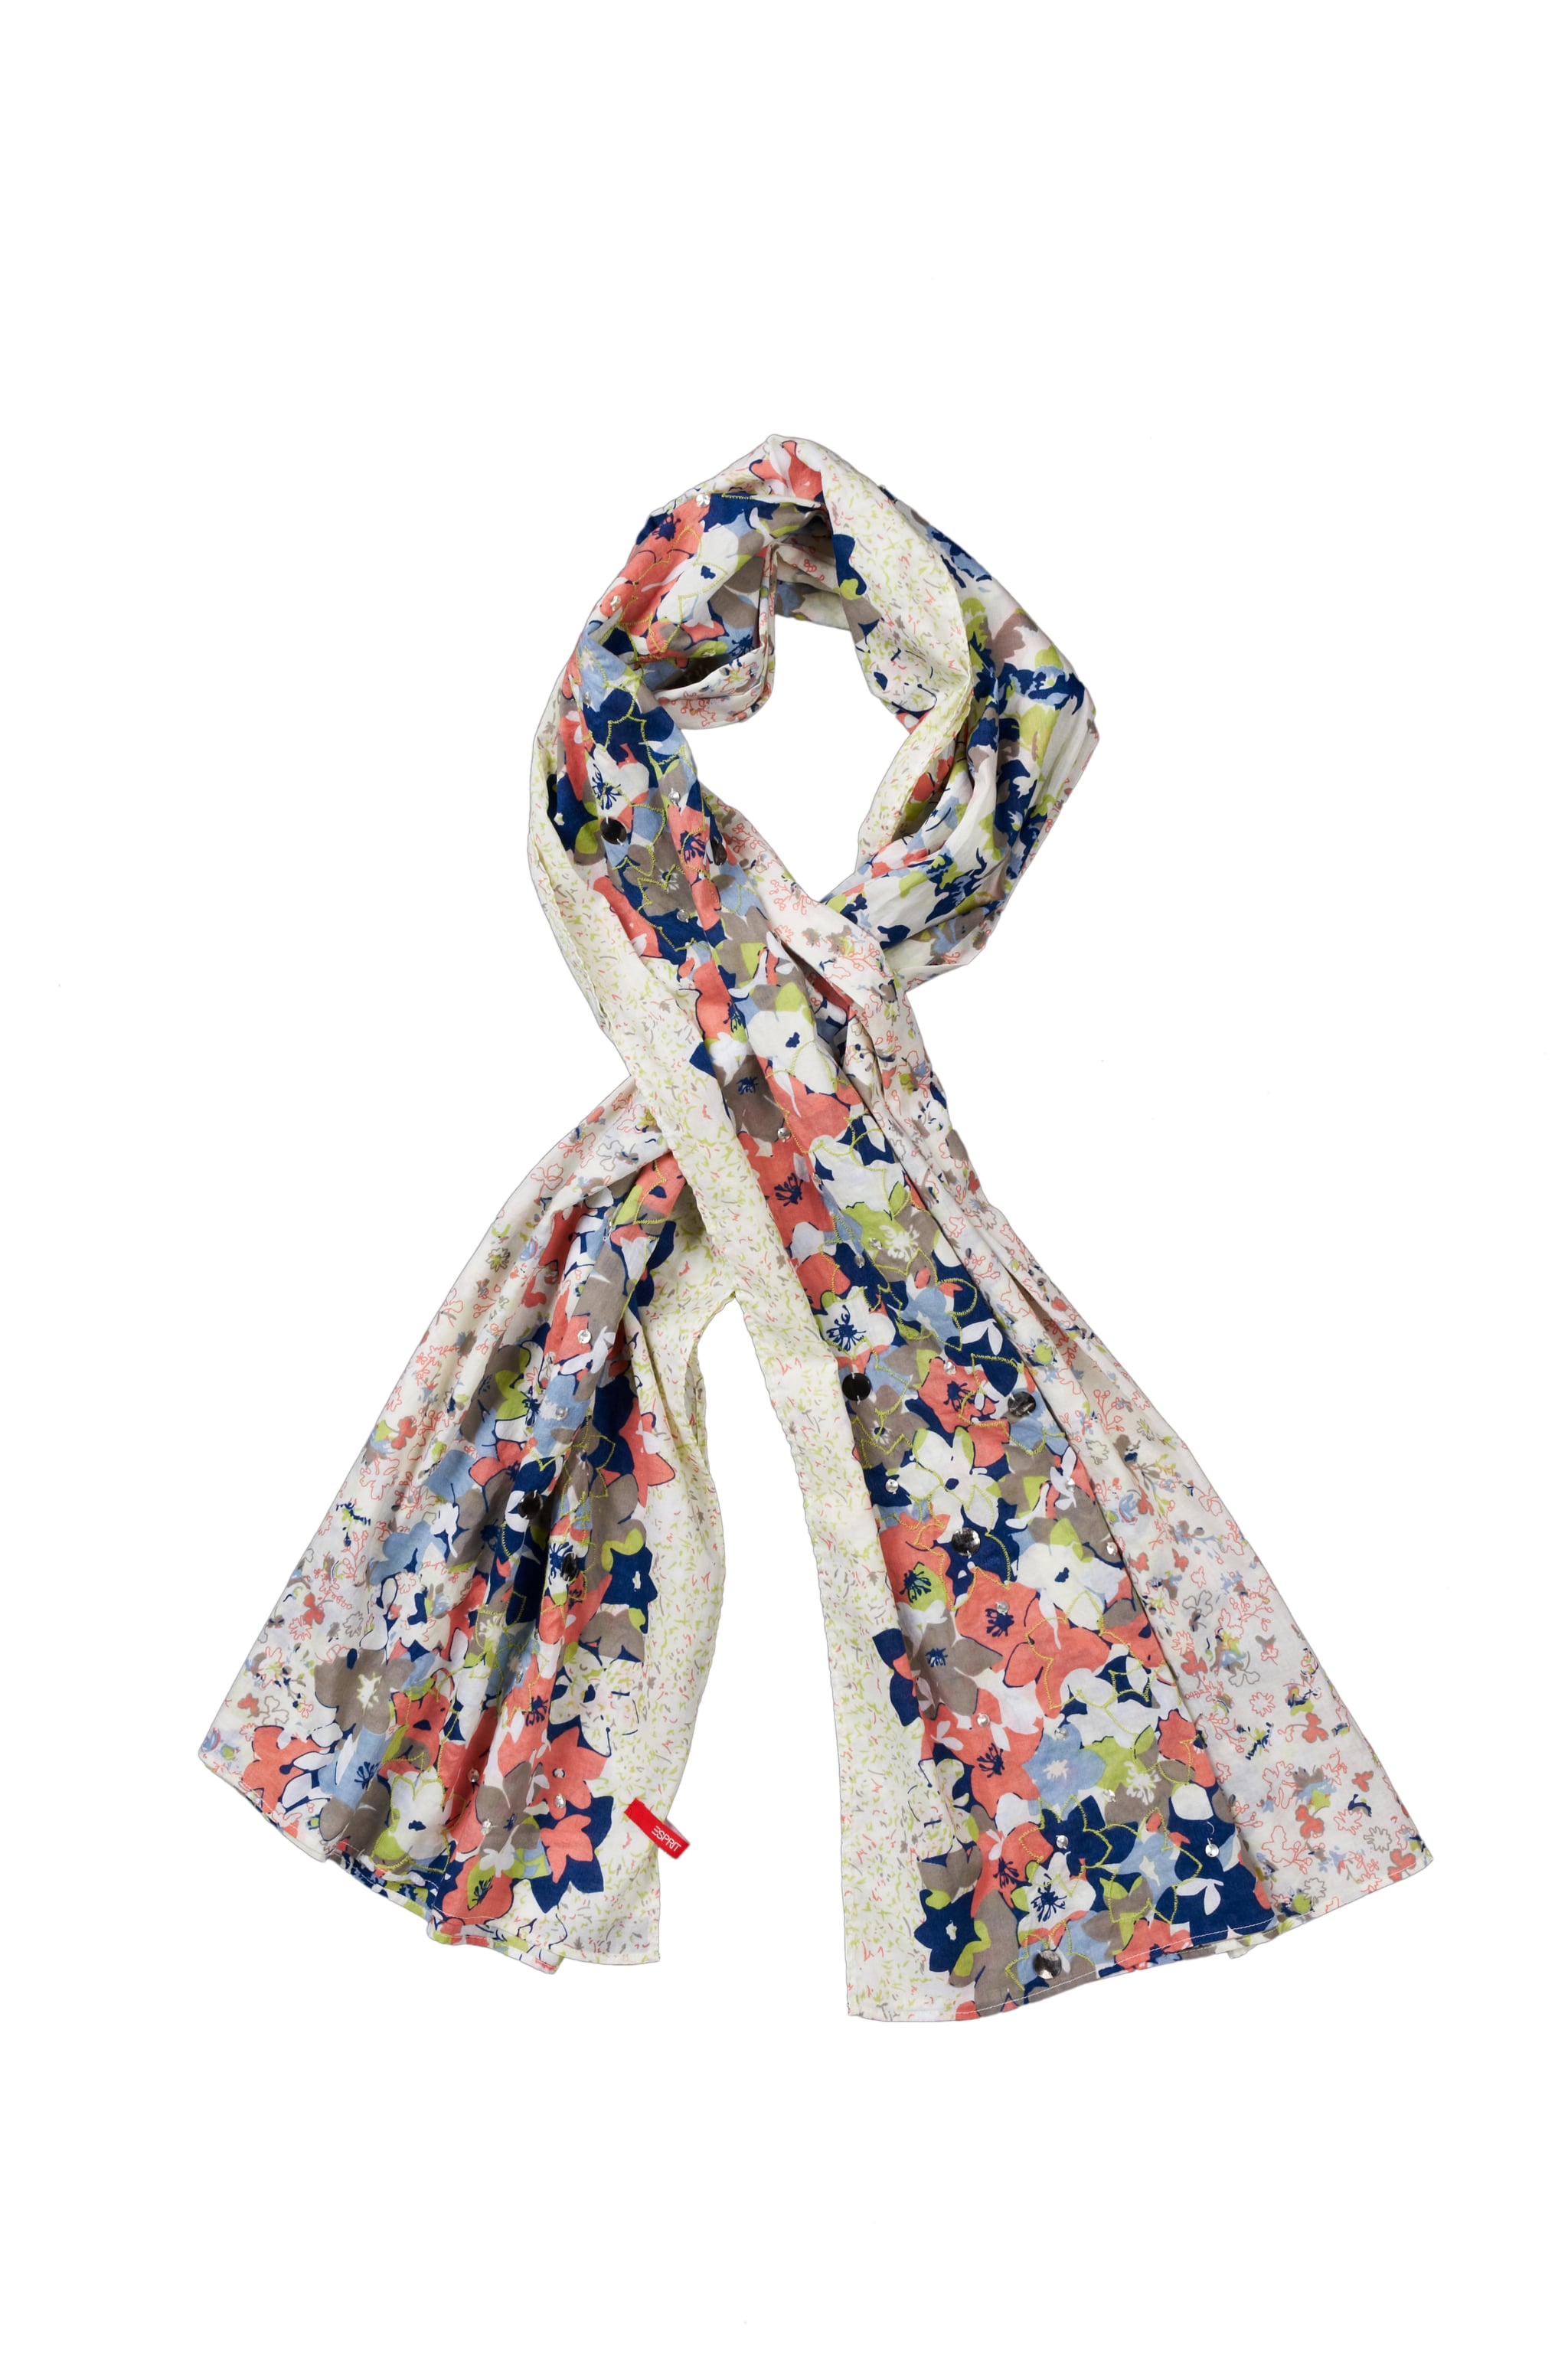 The Light Weight Scarf